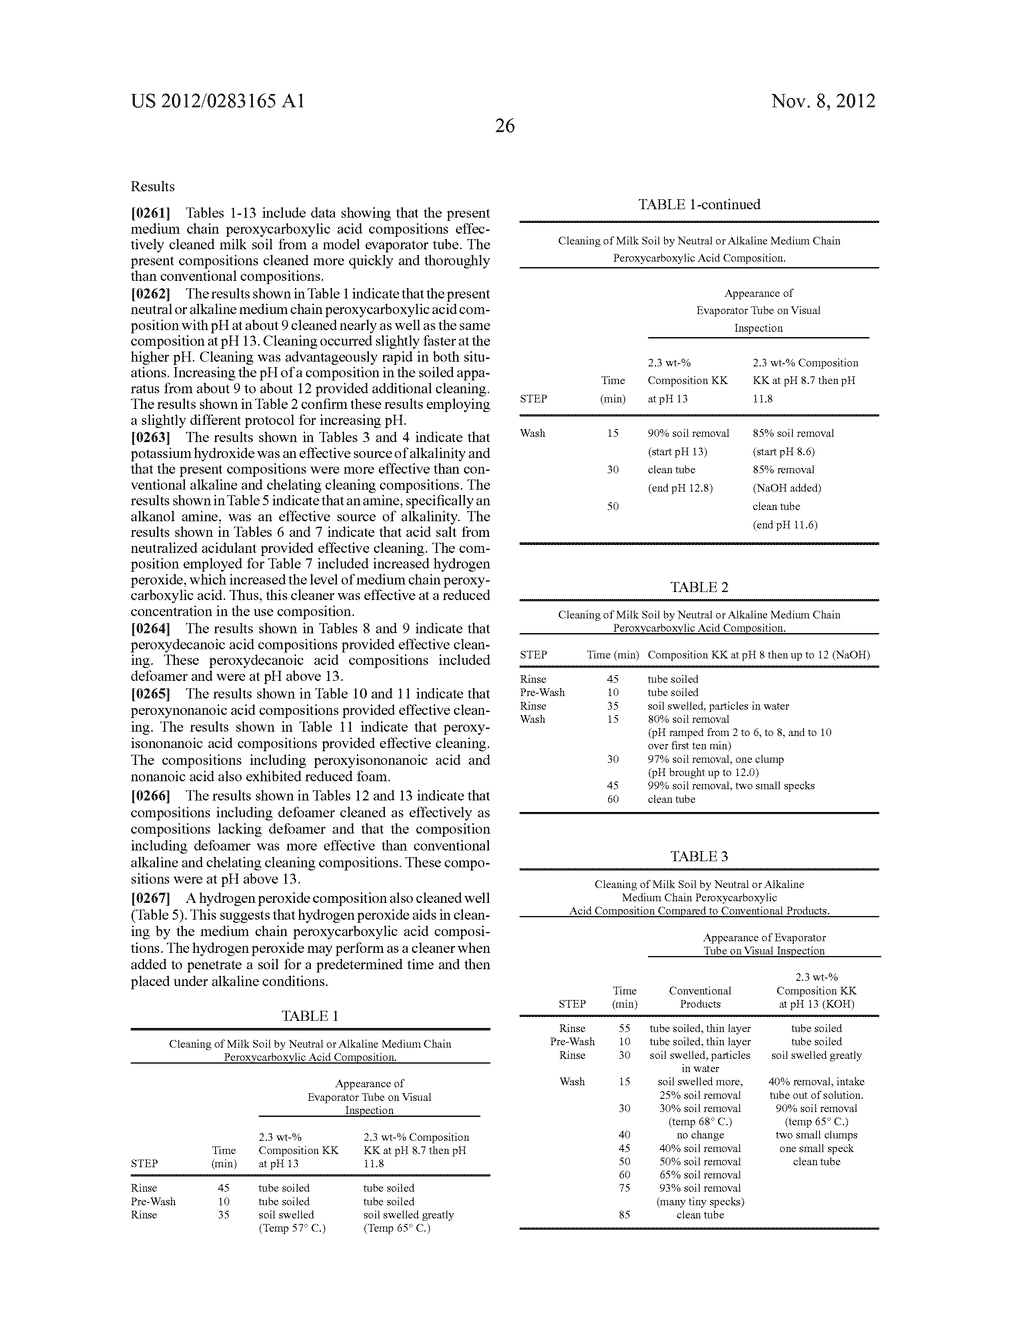 NEUTRAL OR ALKALINE MEDIUM CHAIN PEROXYCARBOXYLIC ACID COMPOSITIONS AND     METHODS EMPLOYING THEM - diagram, schematic, and image 34